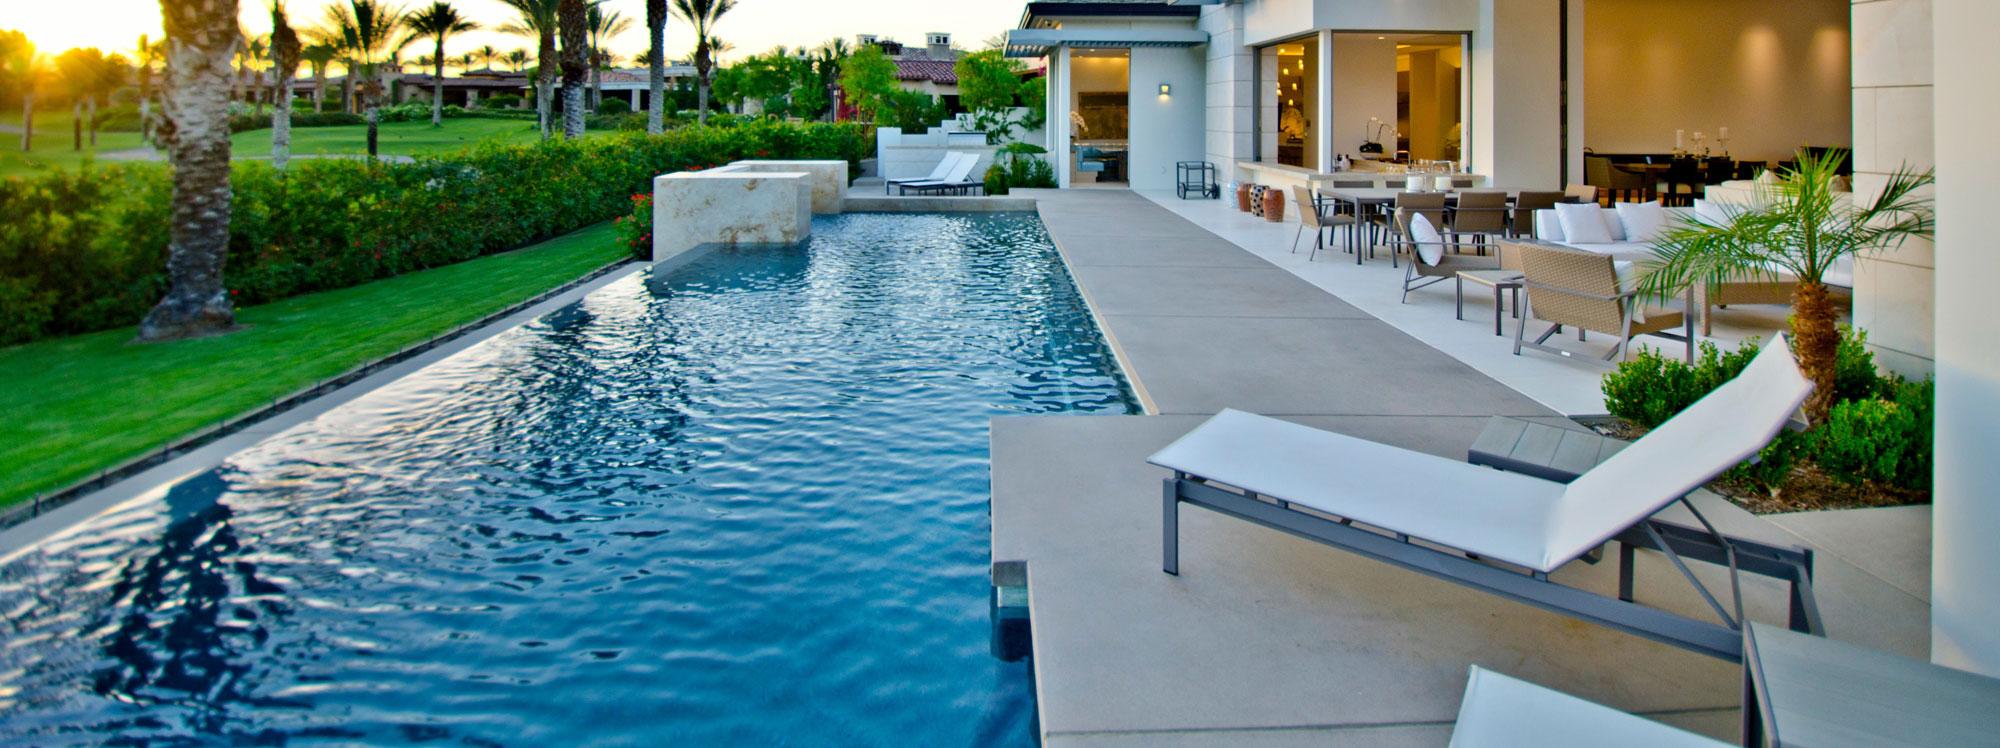 The benefits of building a backyard pool azure pools for Spa and pool